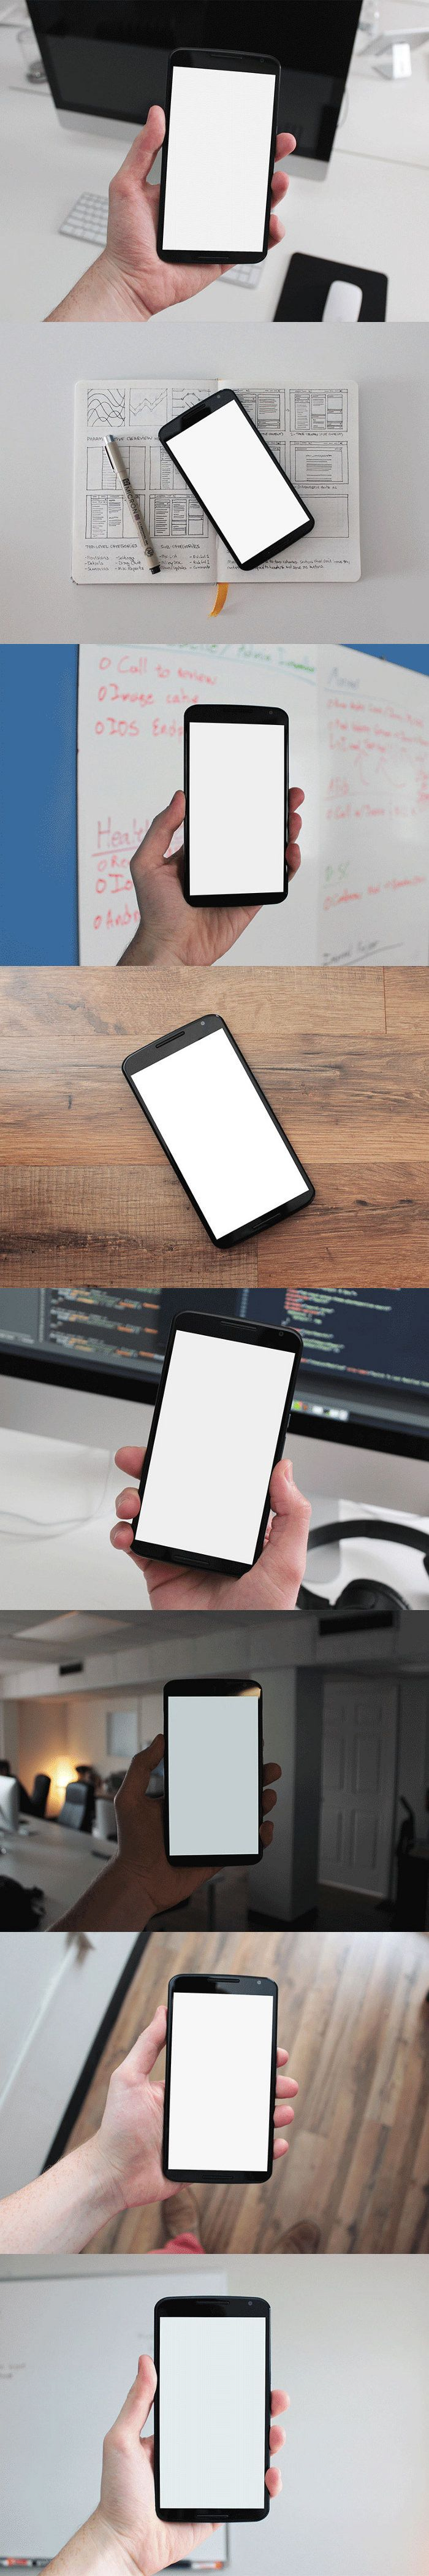 Free 8 Nexus 6 PSD Mockups by Gabe Will | #free #psd #mockups